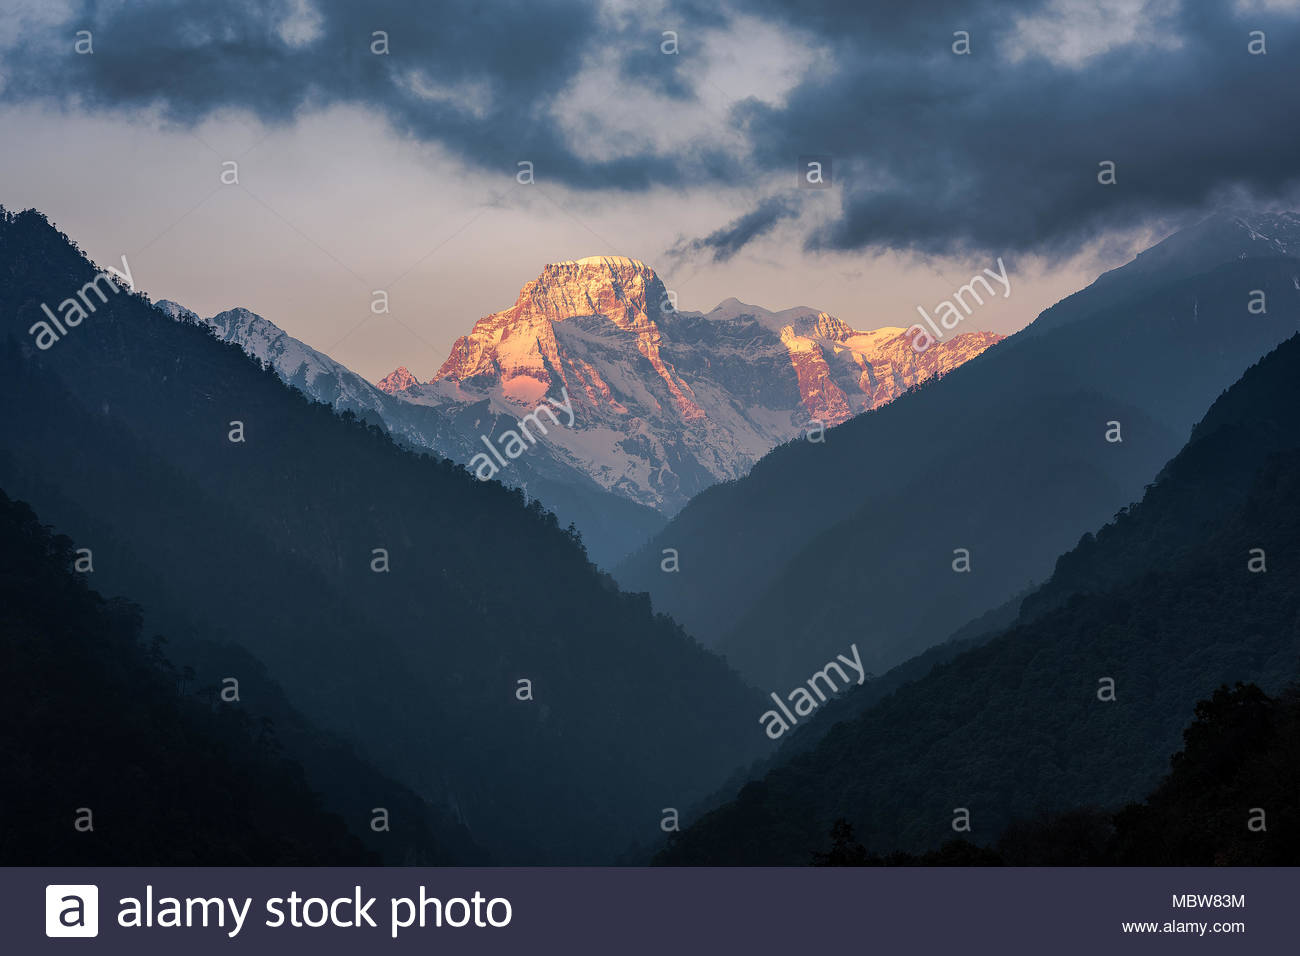 Sunrise over Khang Bum, Gasa Valley, Bhutan on a fine day in March. - Stock Image